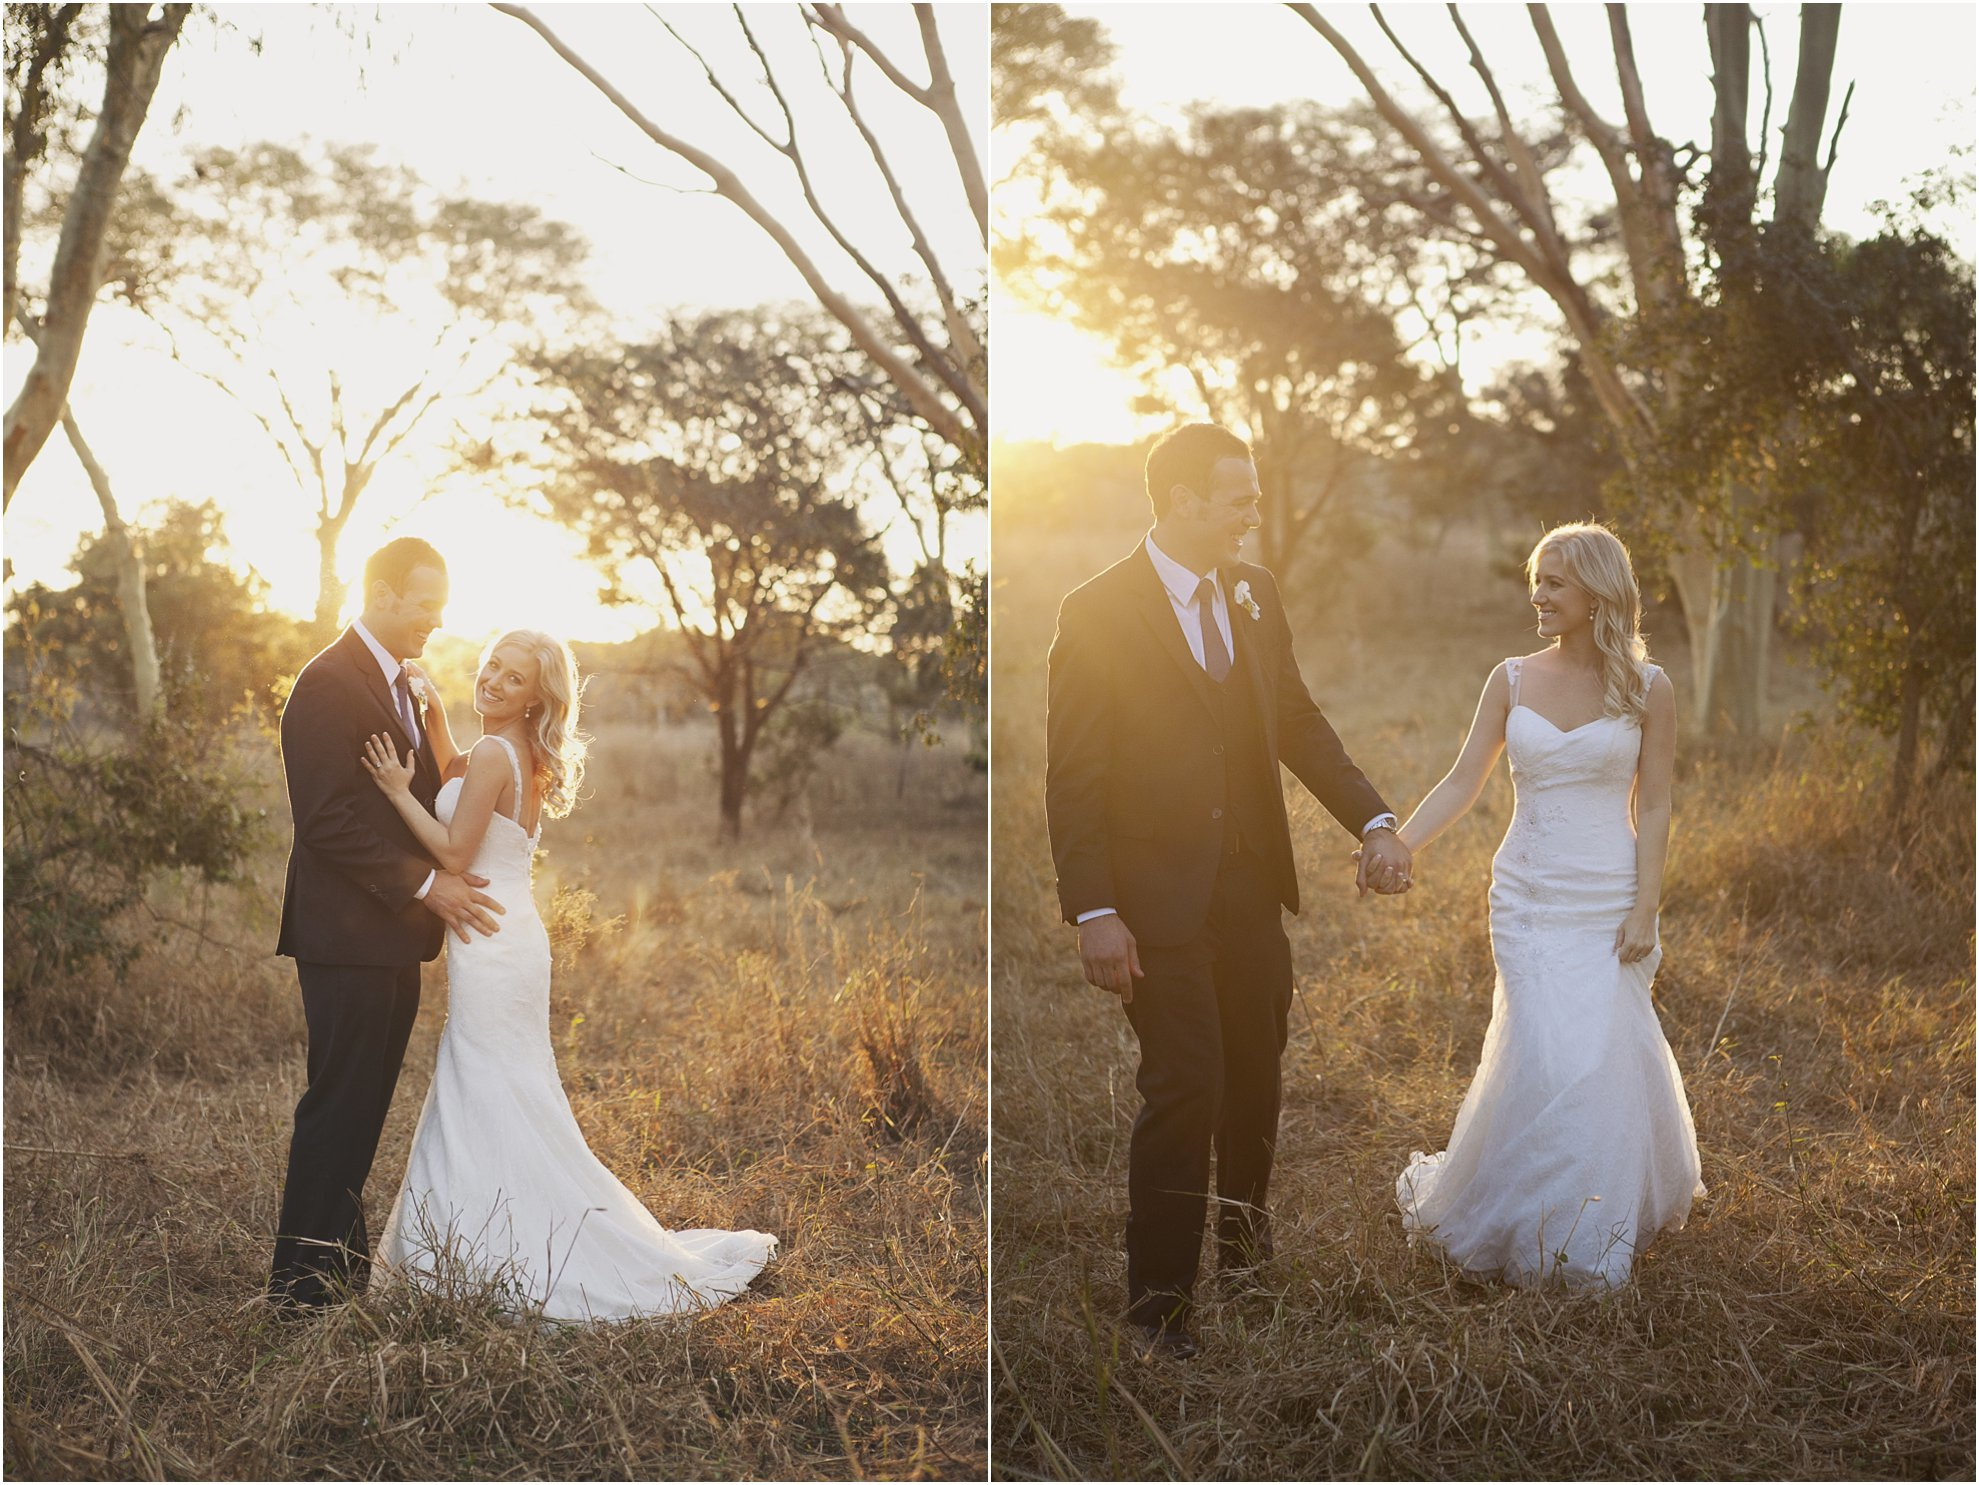 FIONA CLAIR PHOTOGRAPHY Jean & Natalie Swart 01 06 2013_0094